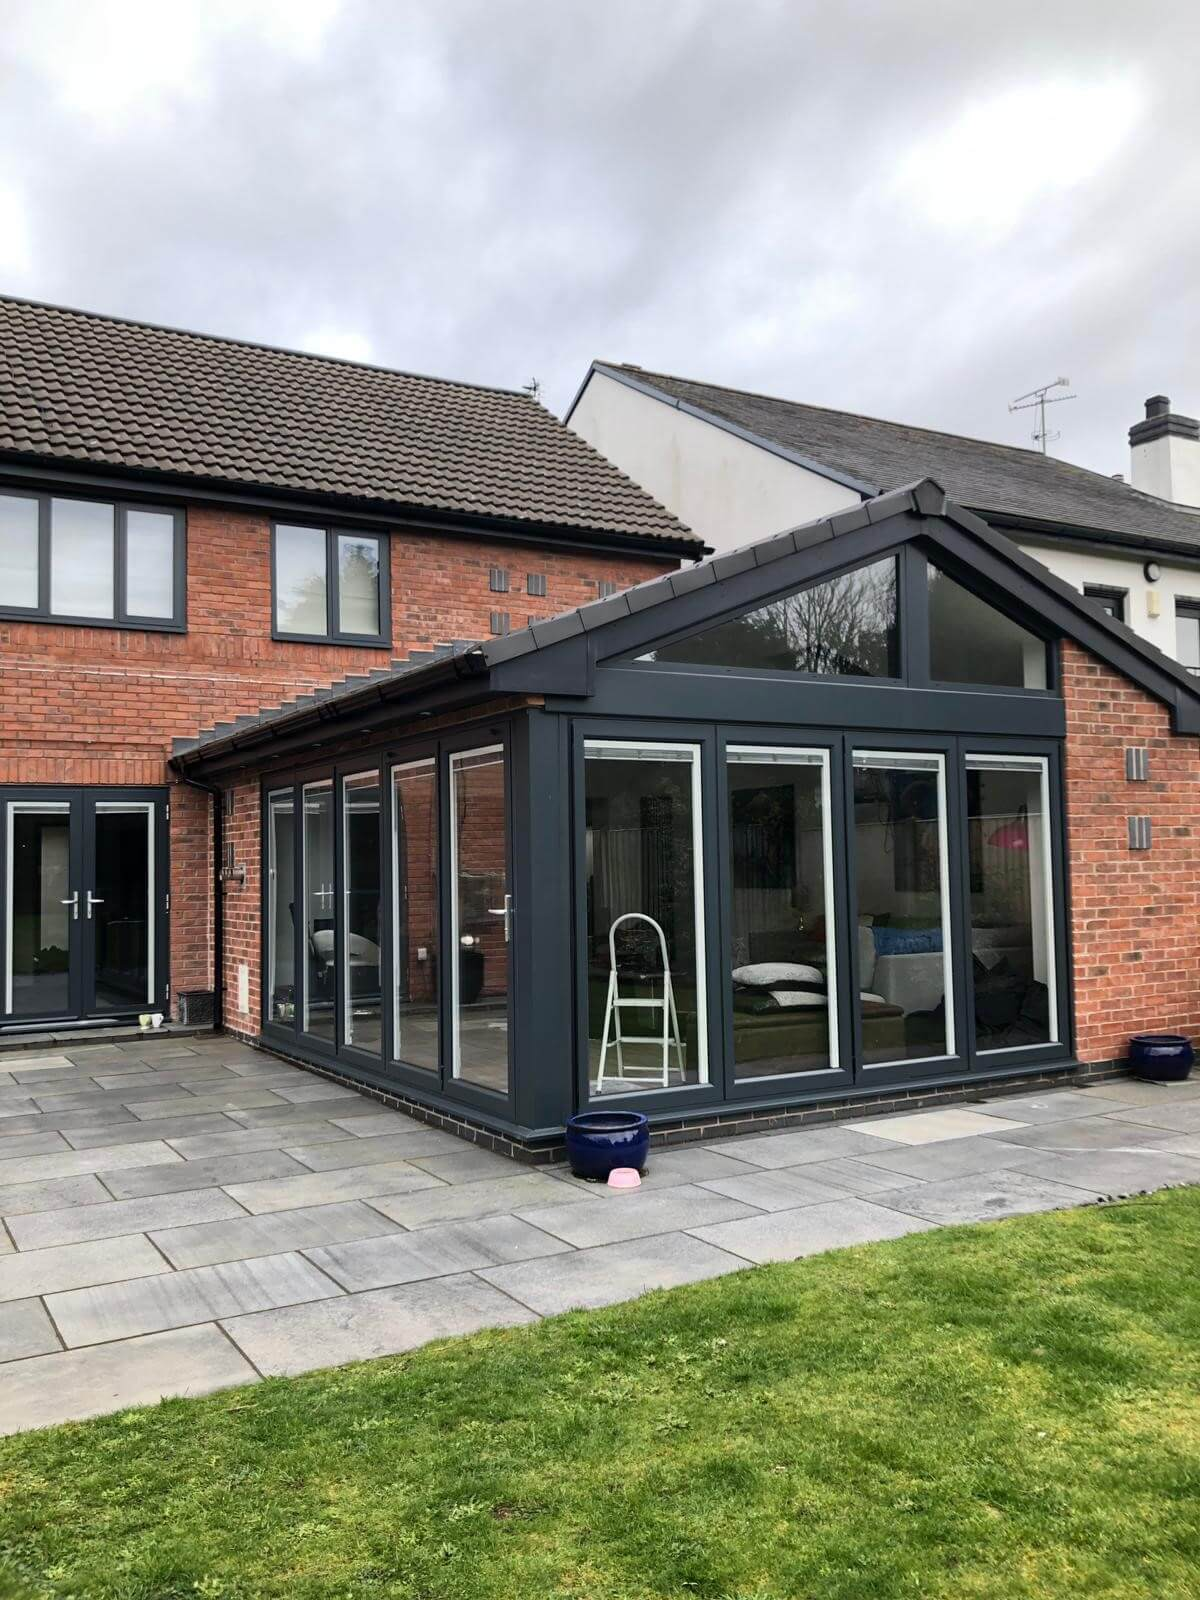 This image shows a rear extension installed by Celsius Home Improvements in Aughton, Ormskirk.